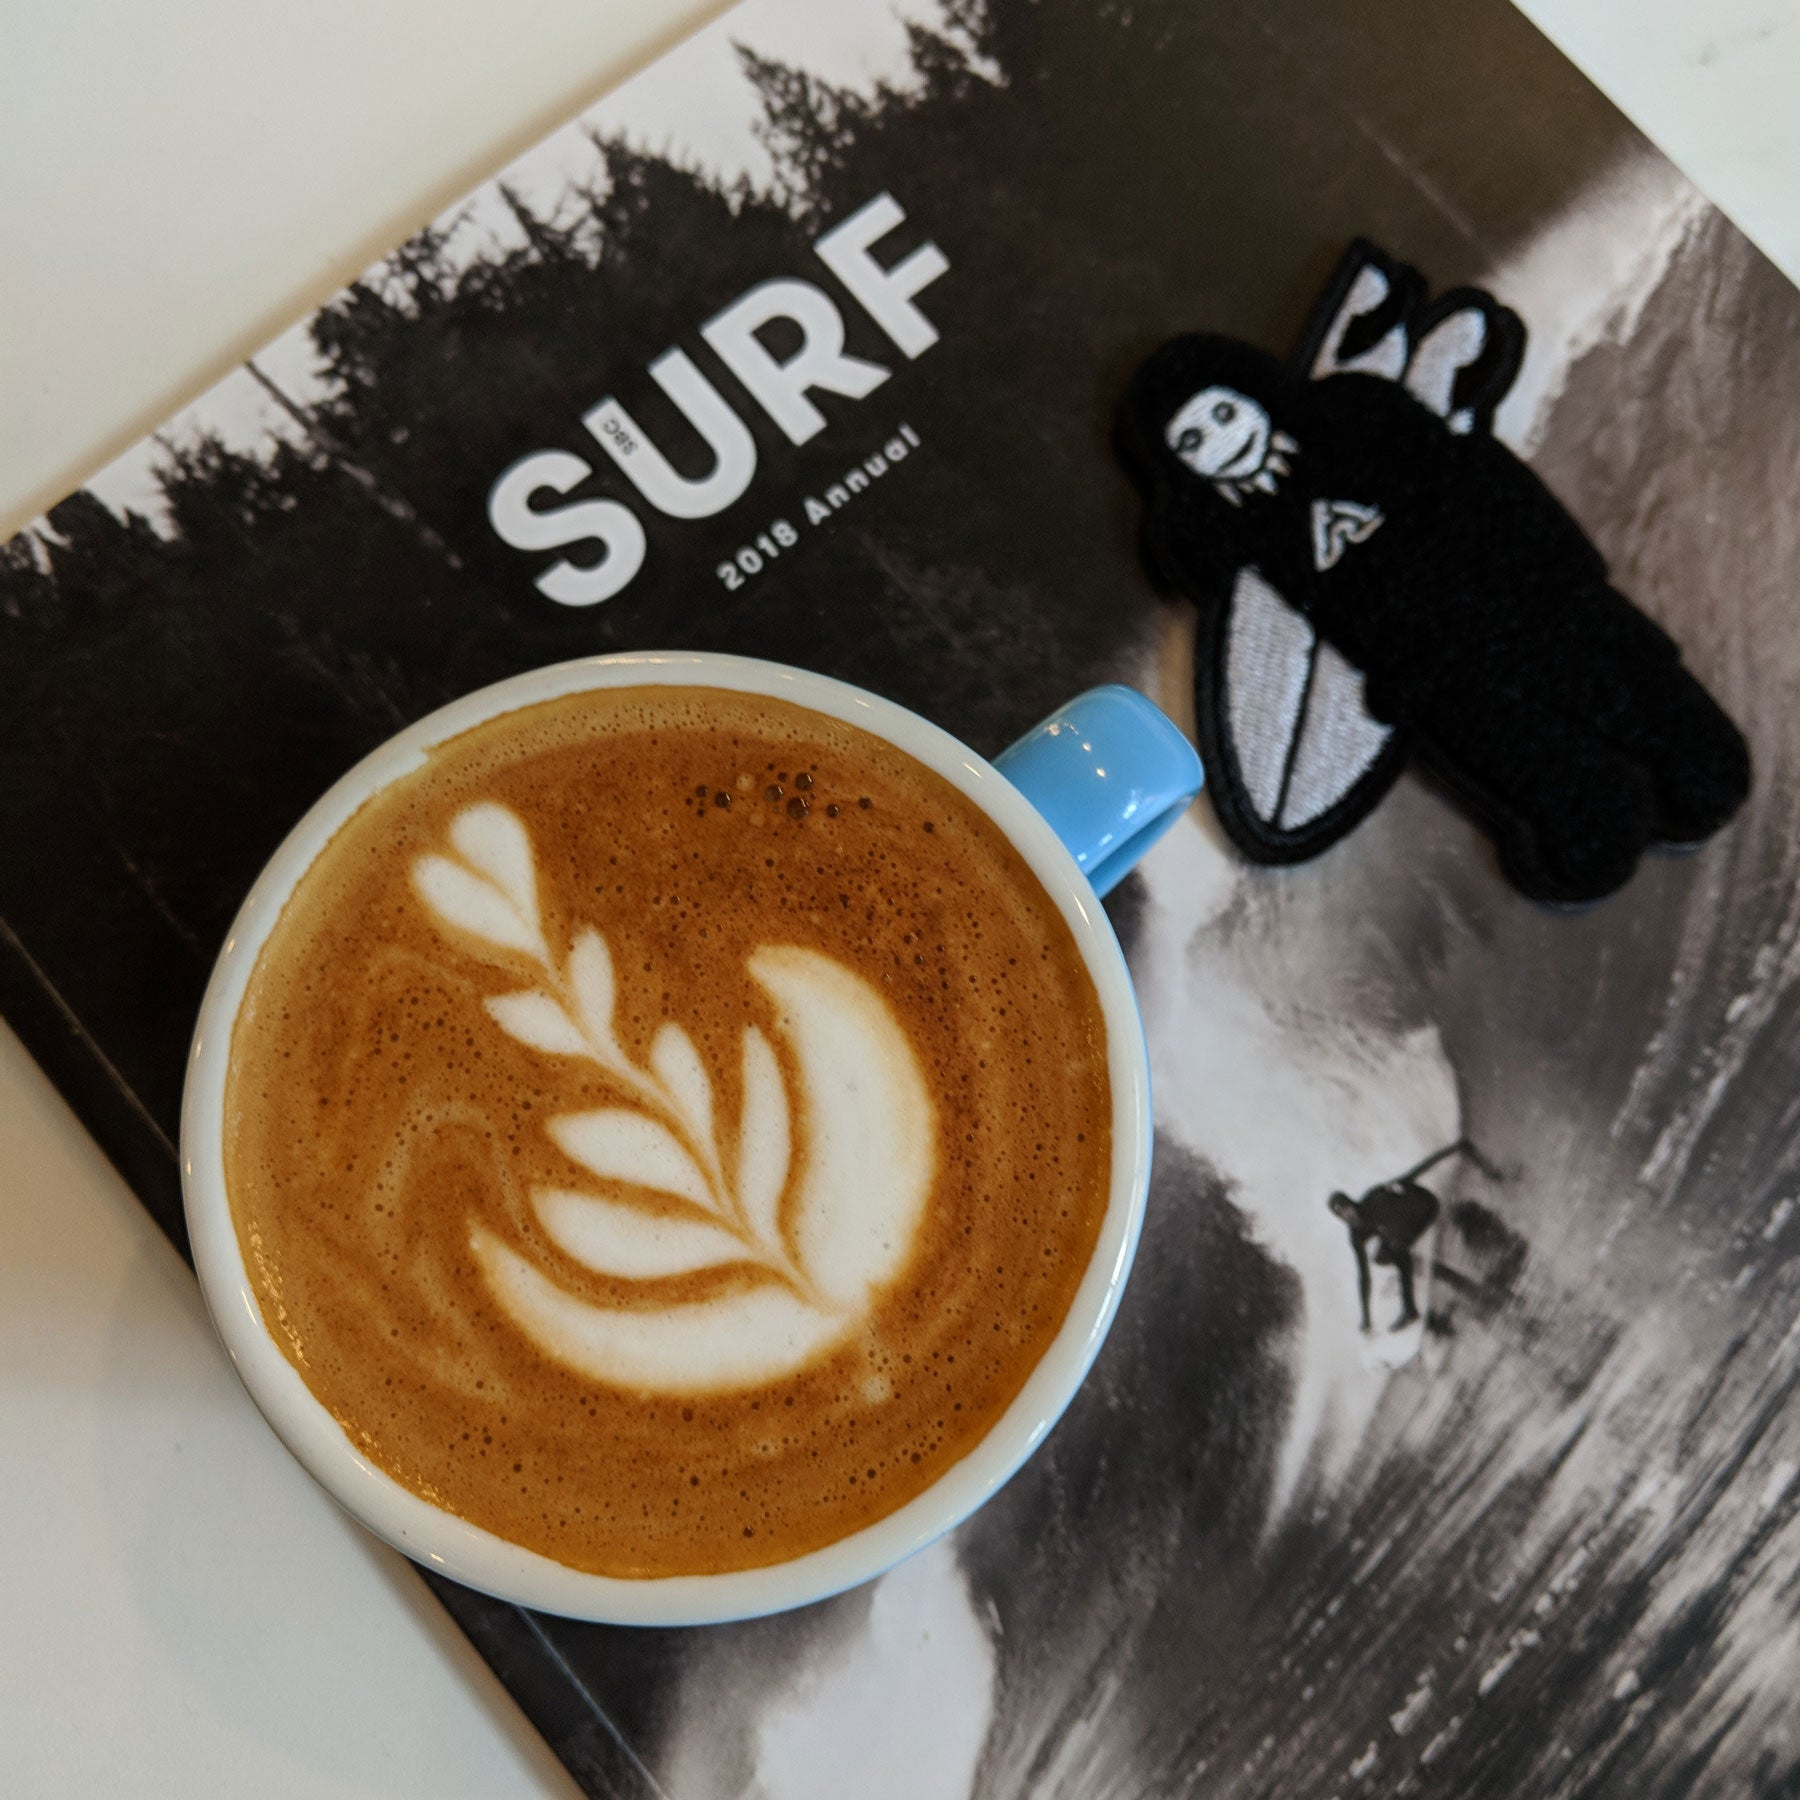 Surf the Greats Coffee